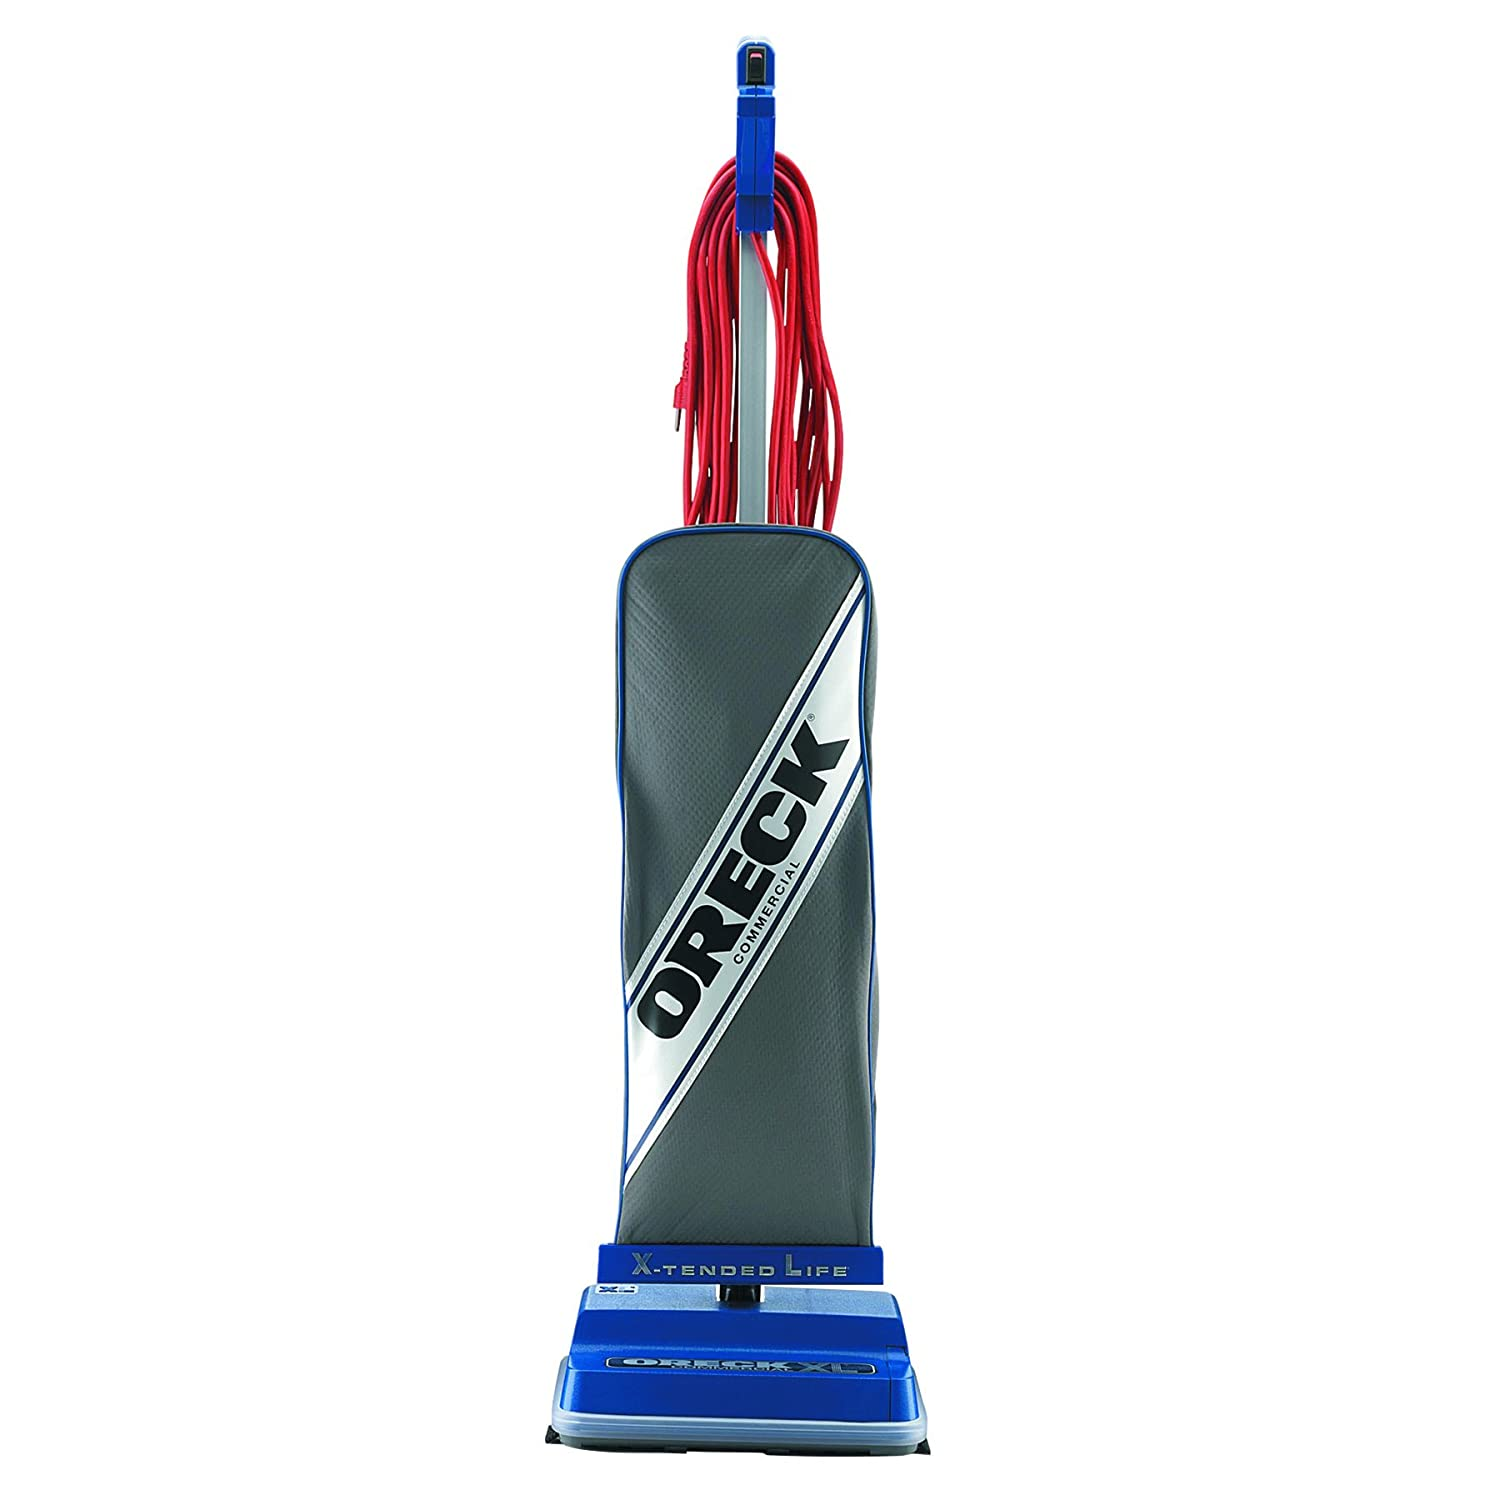 Oreck Commercial XL vacuum cleaner